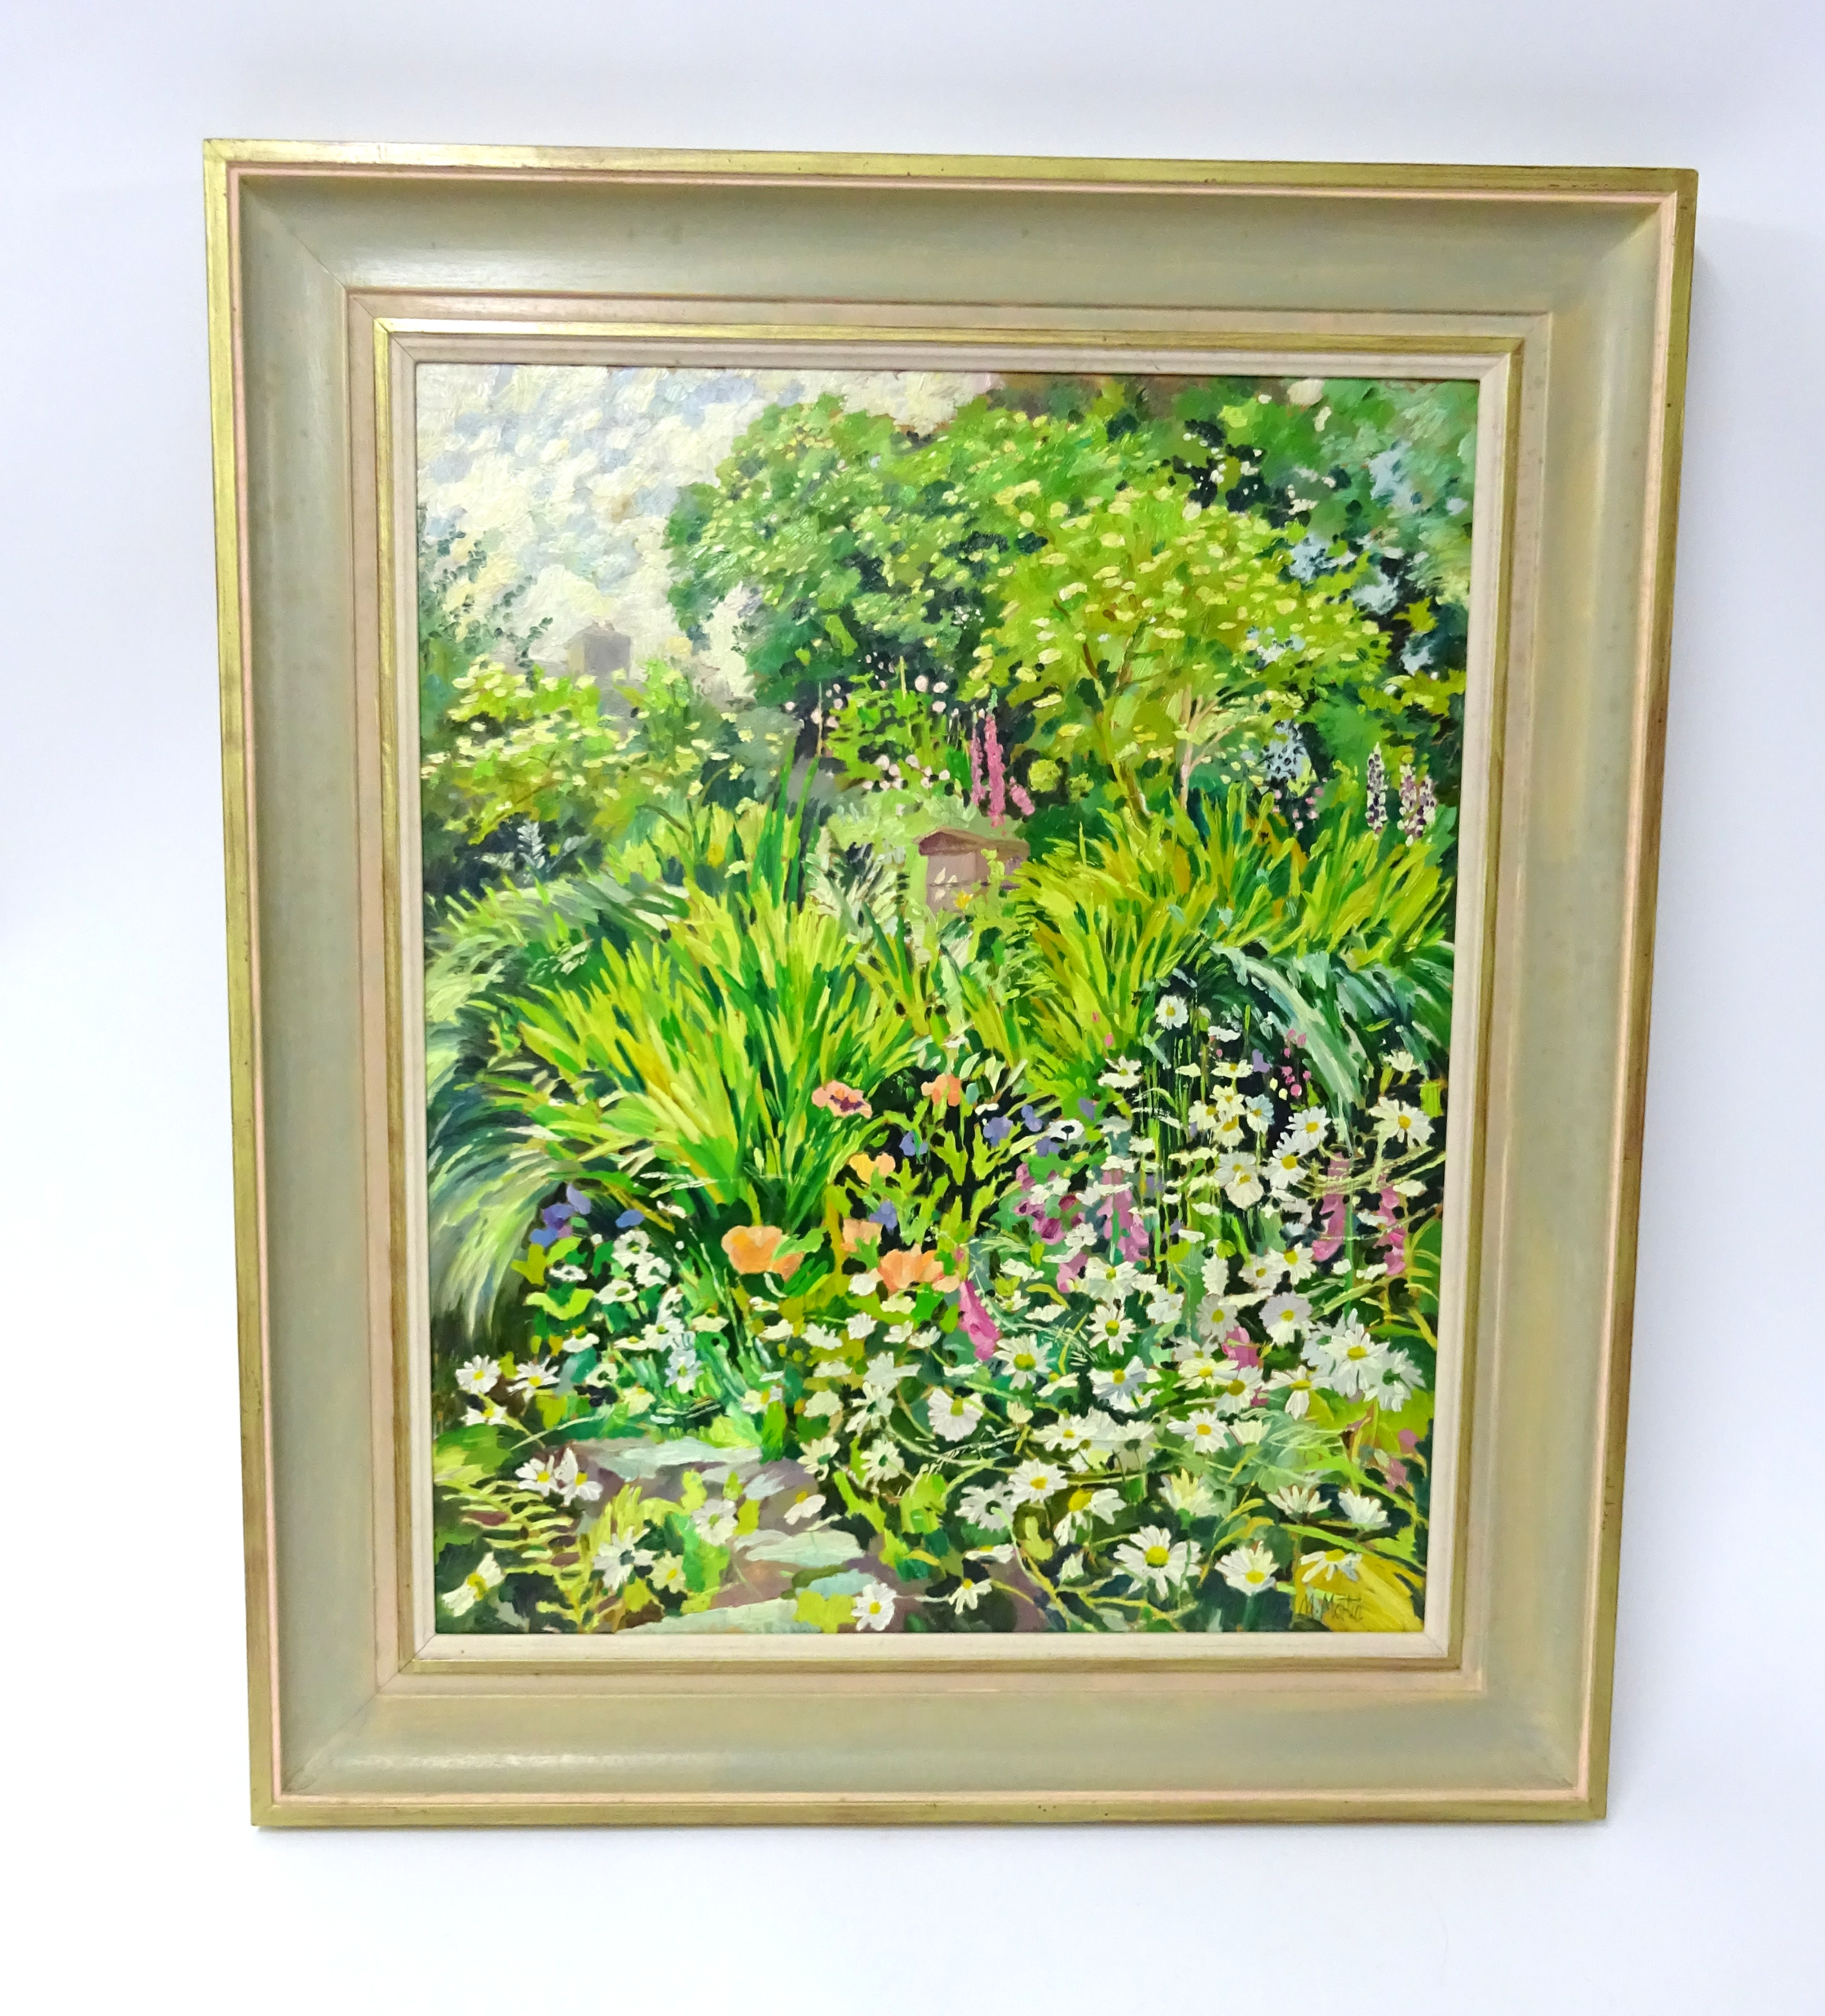 Lot 001 - Mary Martin (b1951) oil on board, 'Flowers and Trees', signed, 54cm x 56cm, Mary Martin studied at